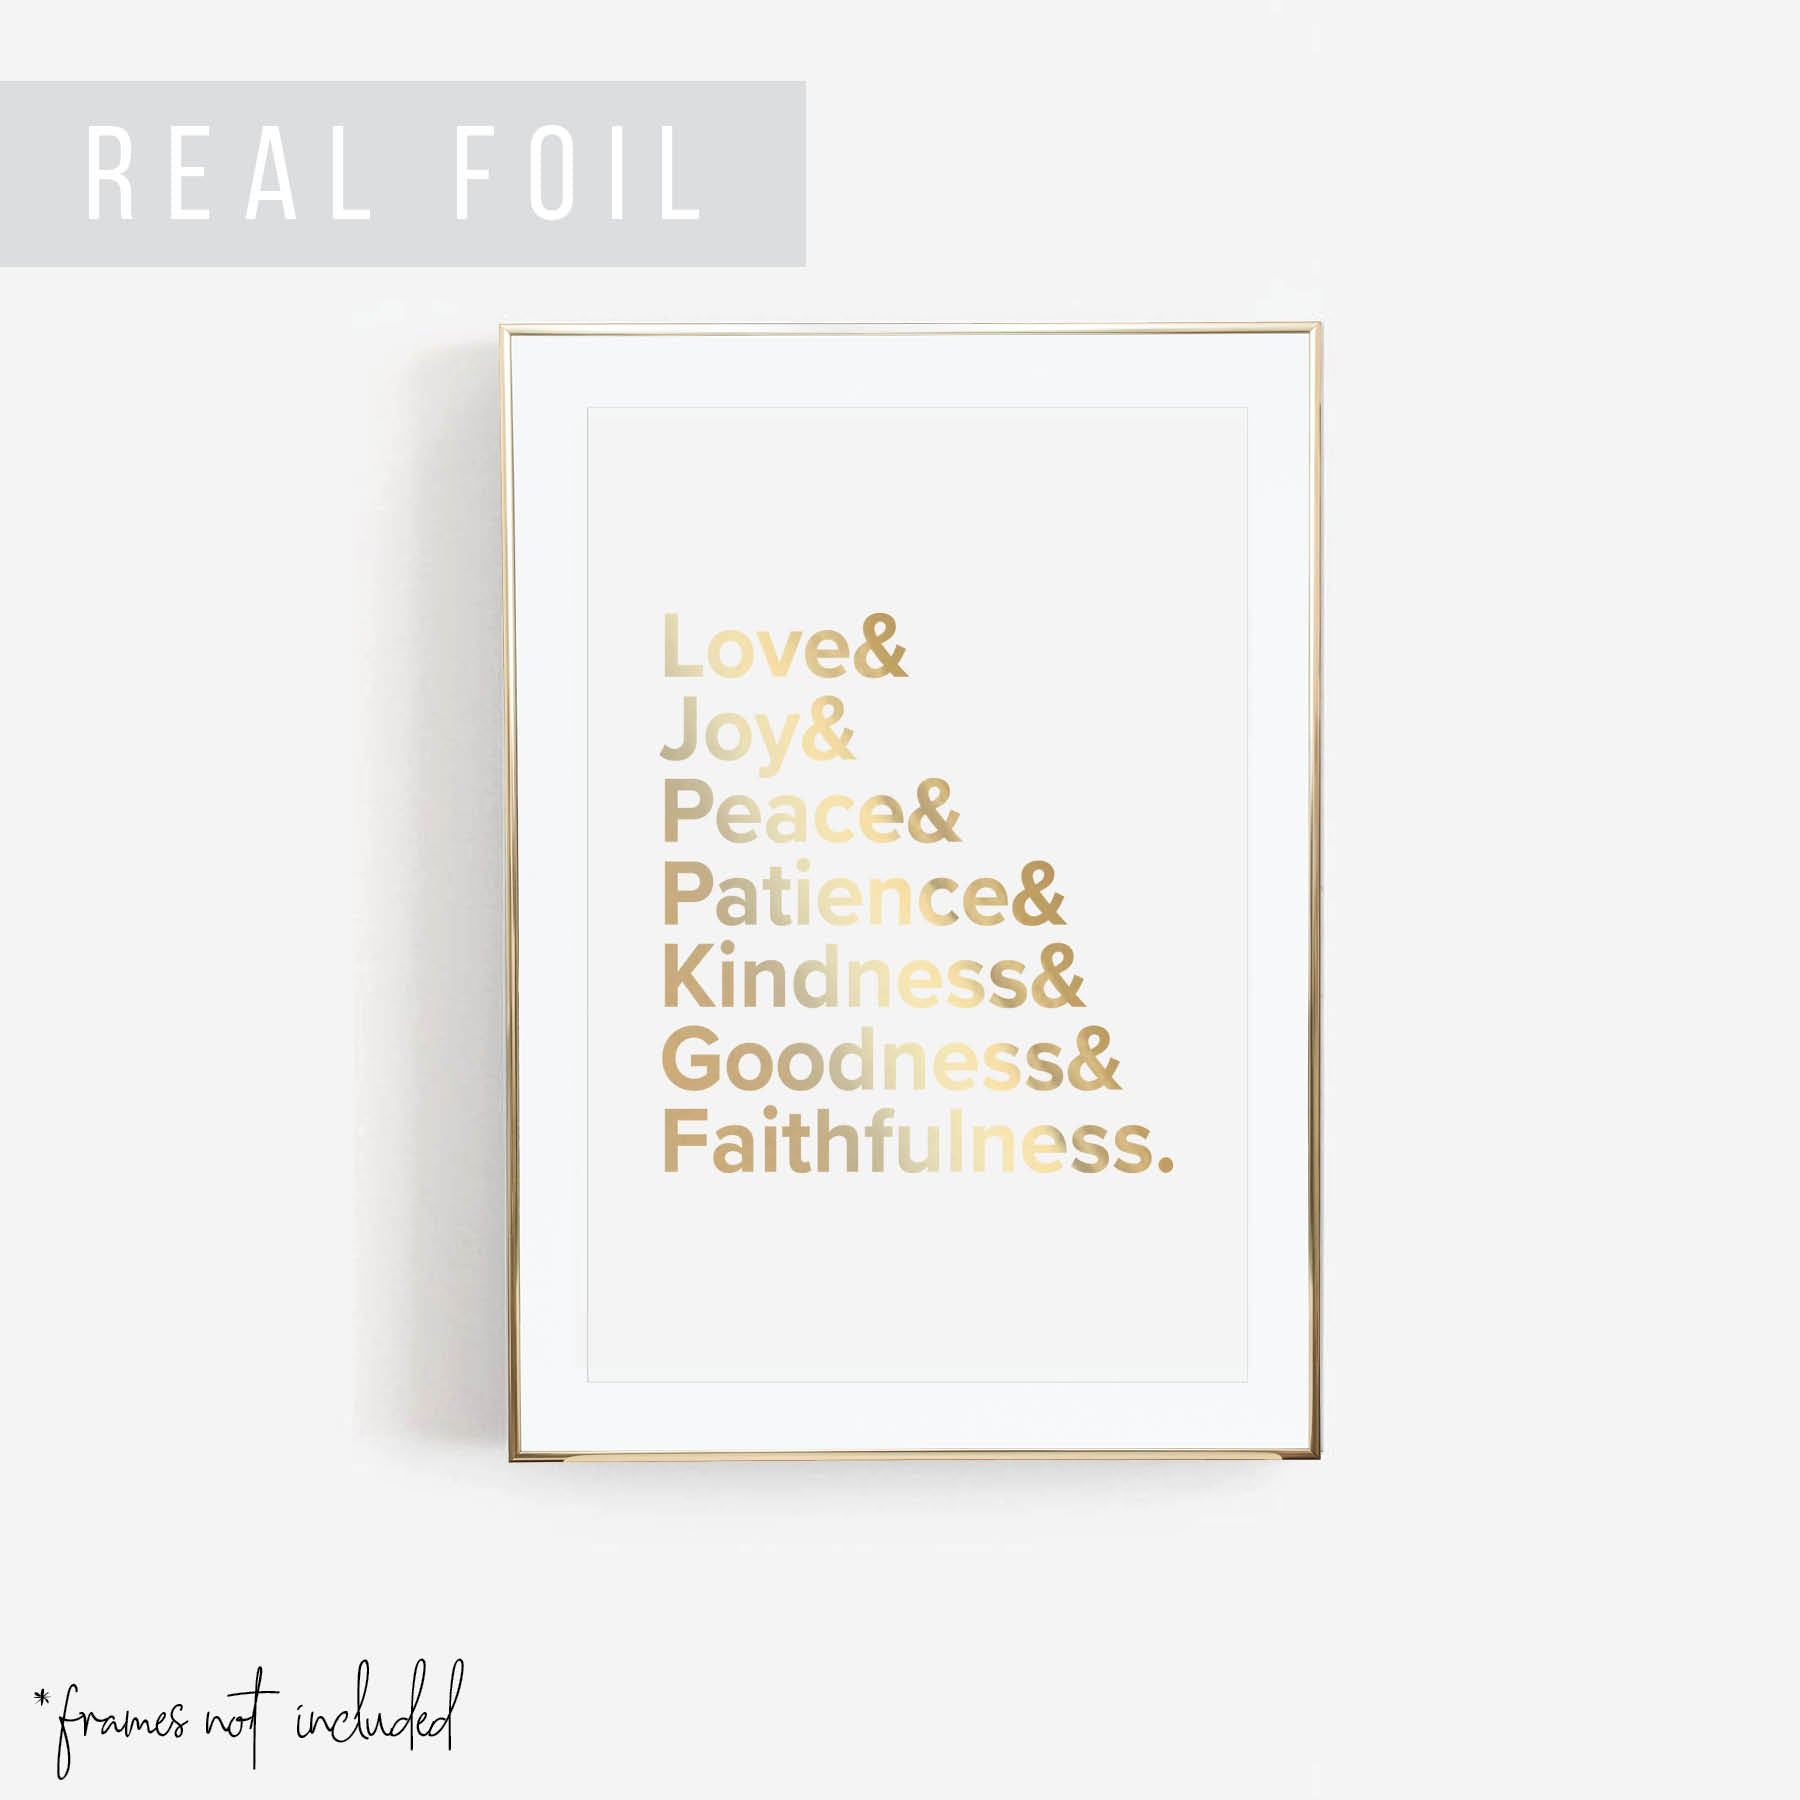 Love Joy Peace Patience Kindness Goodness Faithfulness Foiled Art Print